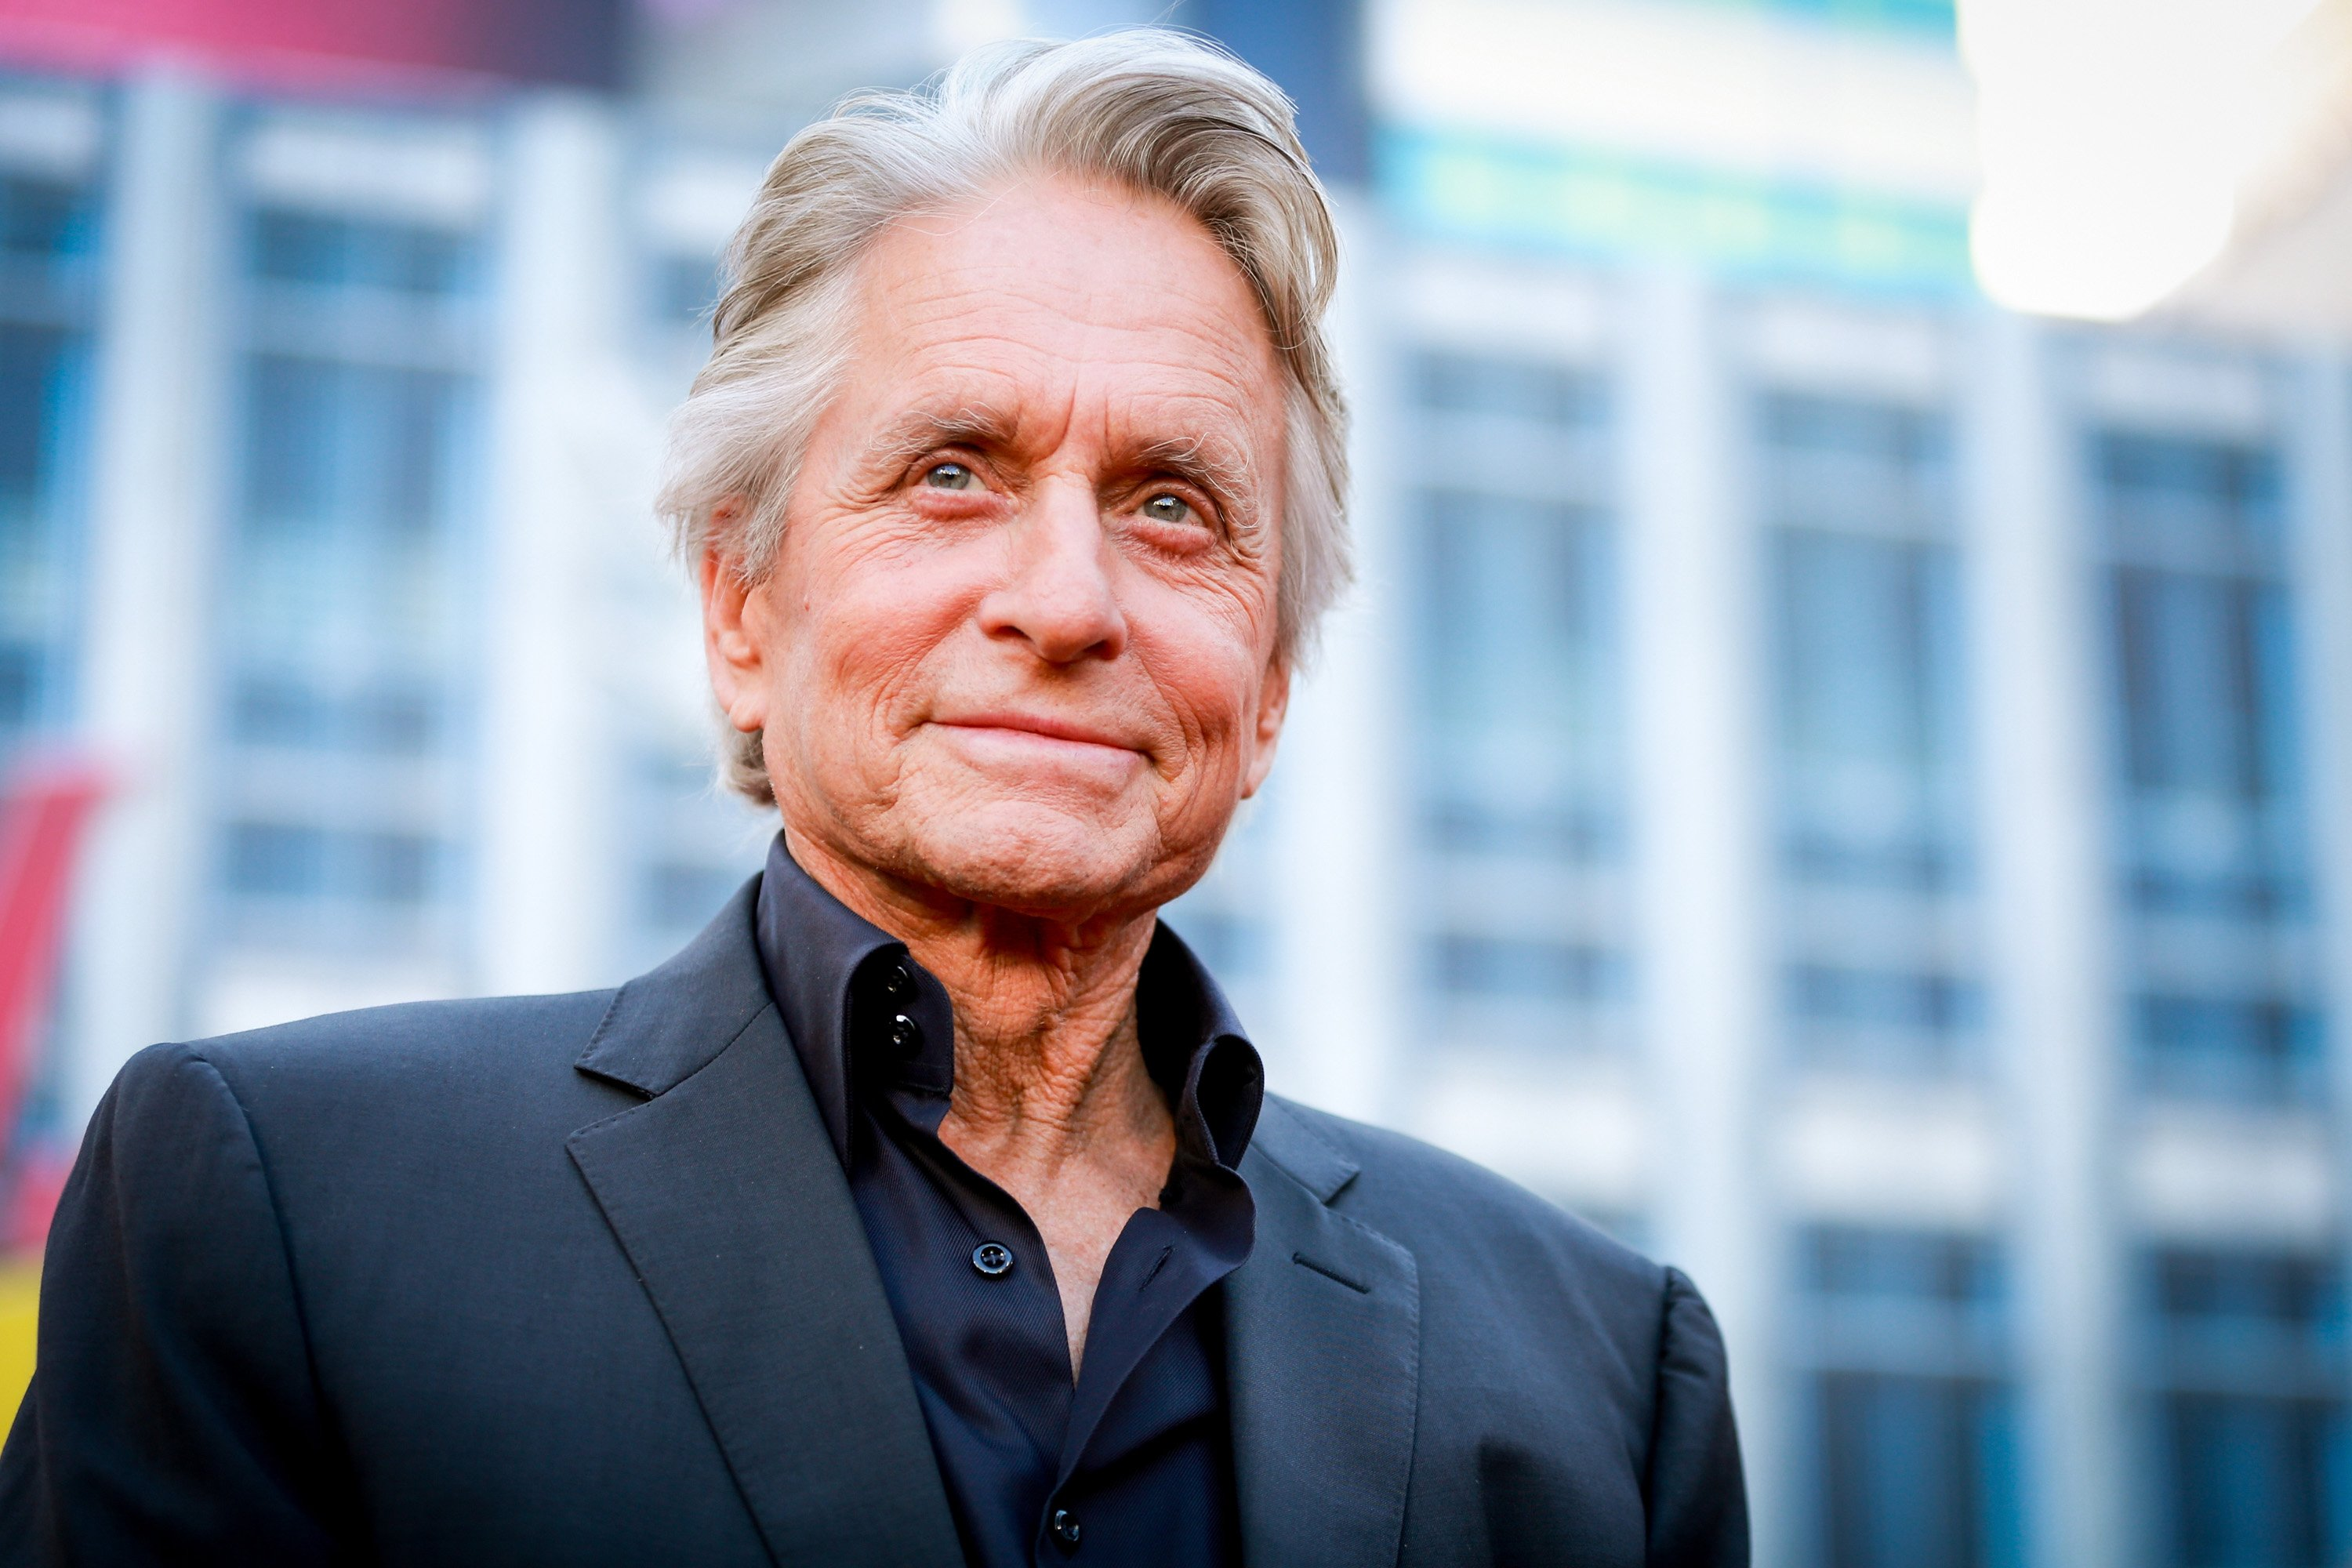 Image Credits: Getty Images / Rich Fury | Michael Douglas attends the premiere of Disney And Marvel's 'Ant-Man And The Wasp' on June 25, 2018 in Hollywood, California.